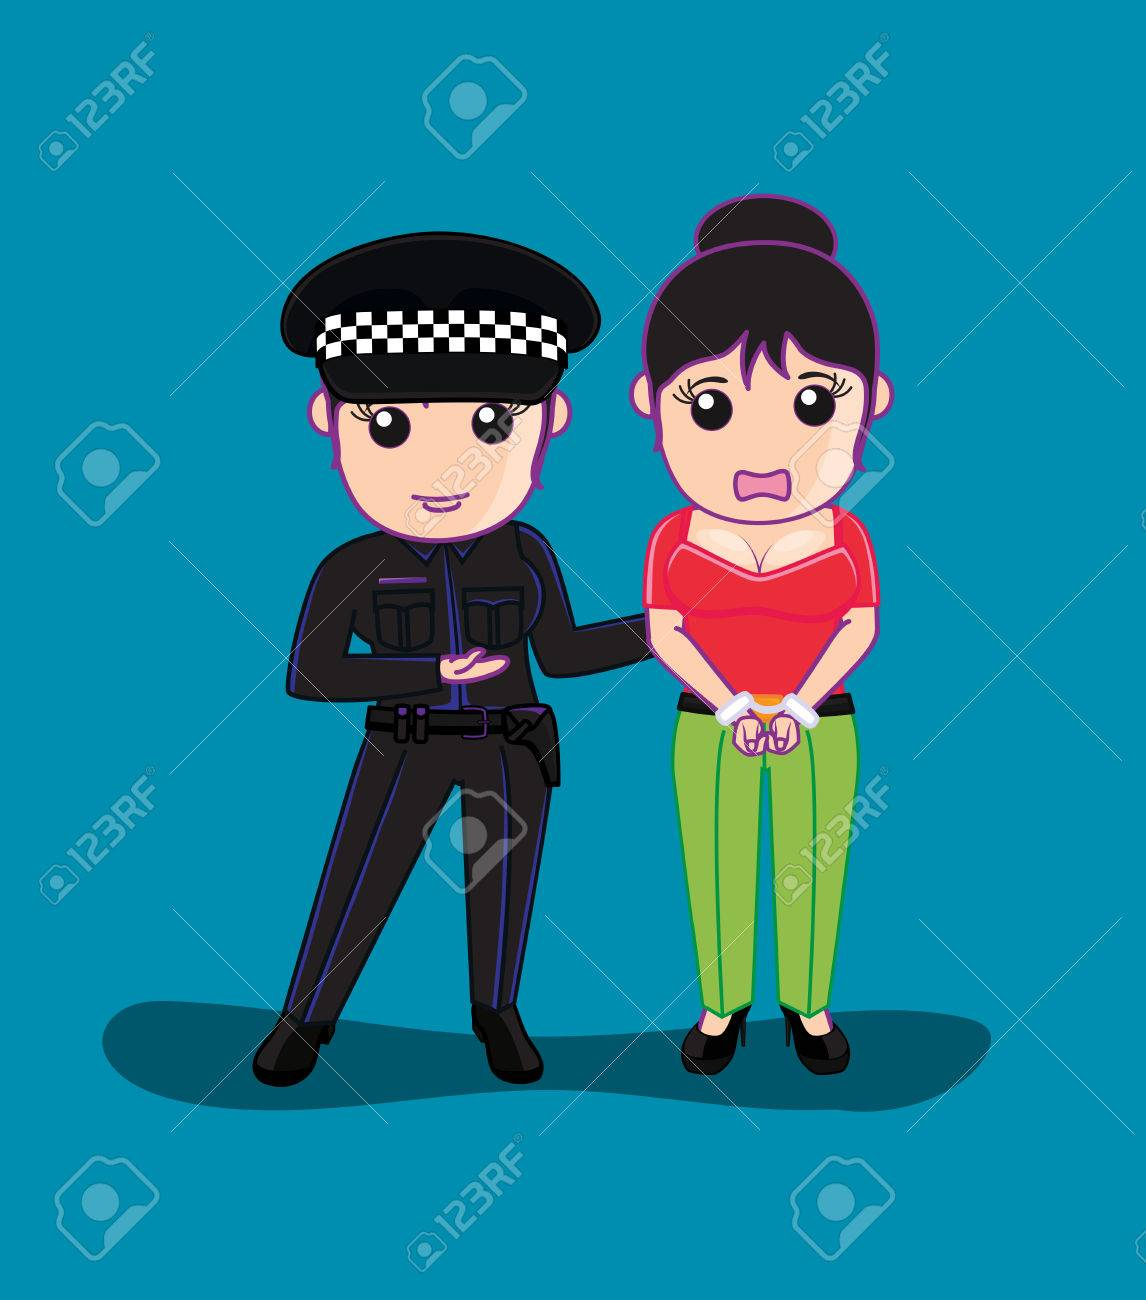 Lady Police Arrested A Woman Royalty Free Cliparts, Vectors, And ...